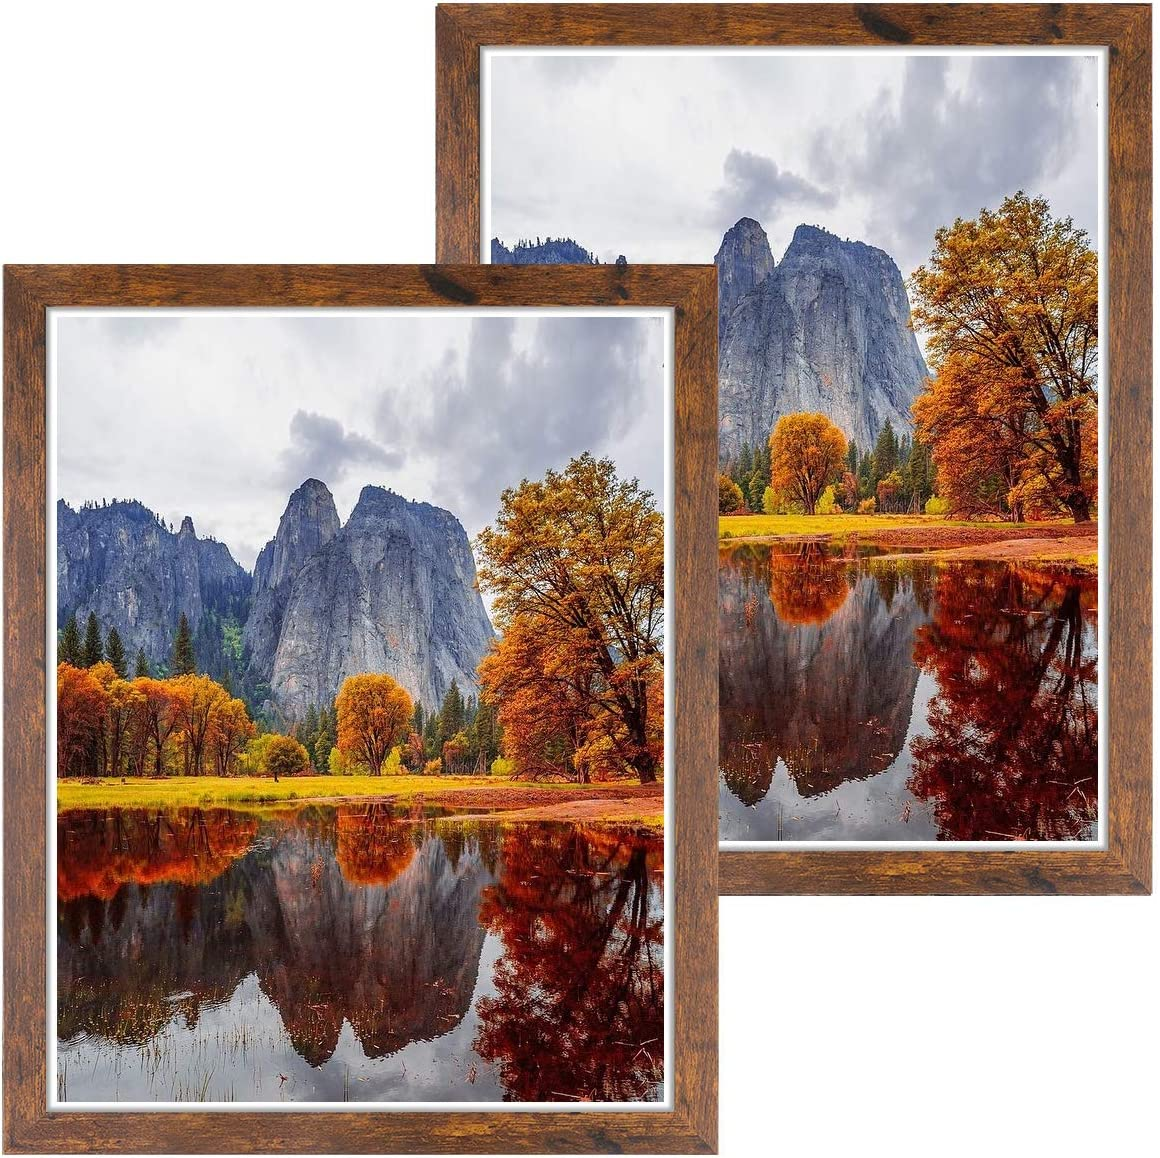 DBWIN 16x20 Picture Frame Rustic Brown Wood Pattern Poster Frame Plexiglass Front 2 Pack for Art Prints Puzzles Murals Wall Decor Vertically or Horizontally(LY01-16X20-BR2)